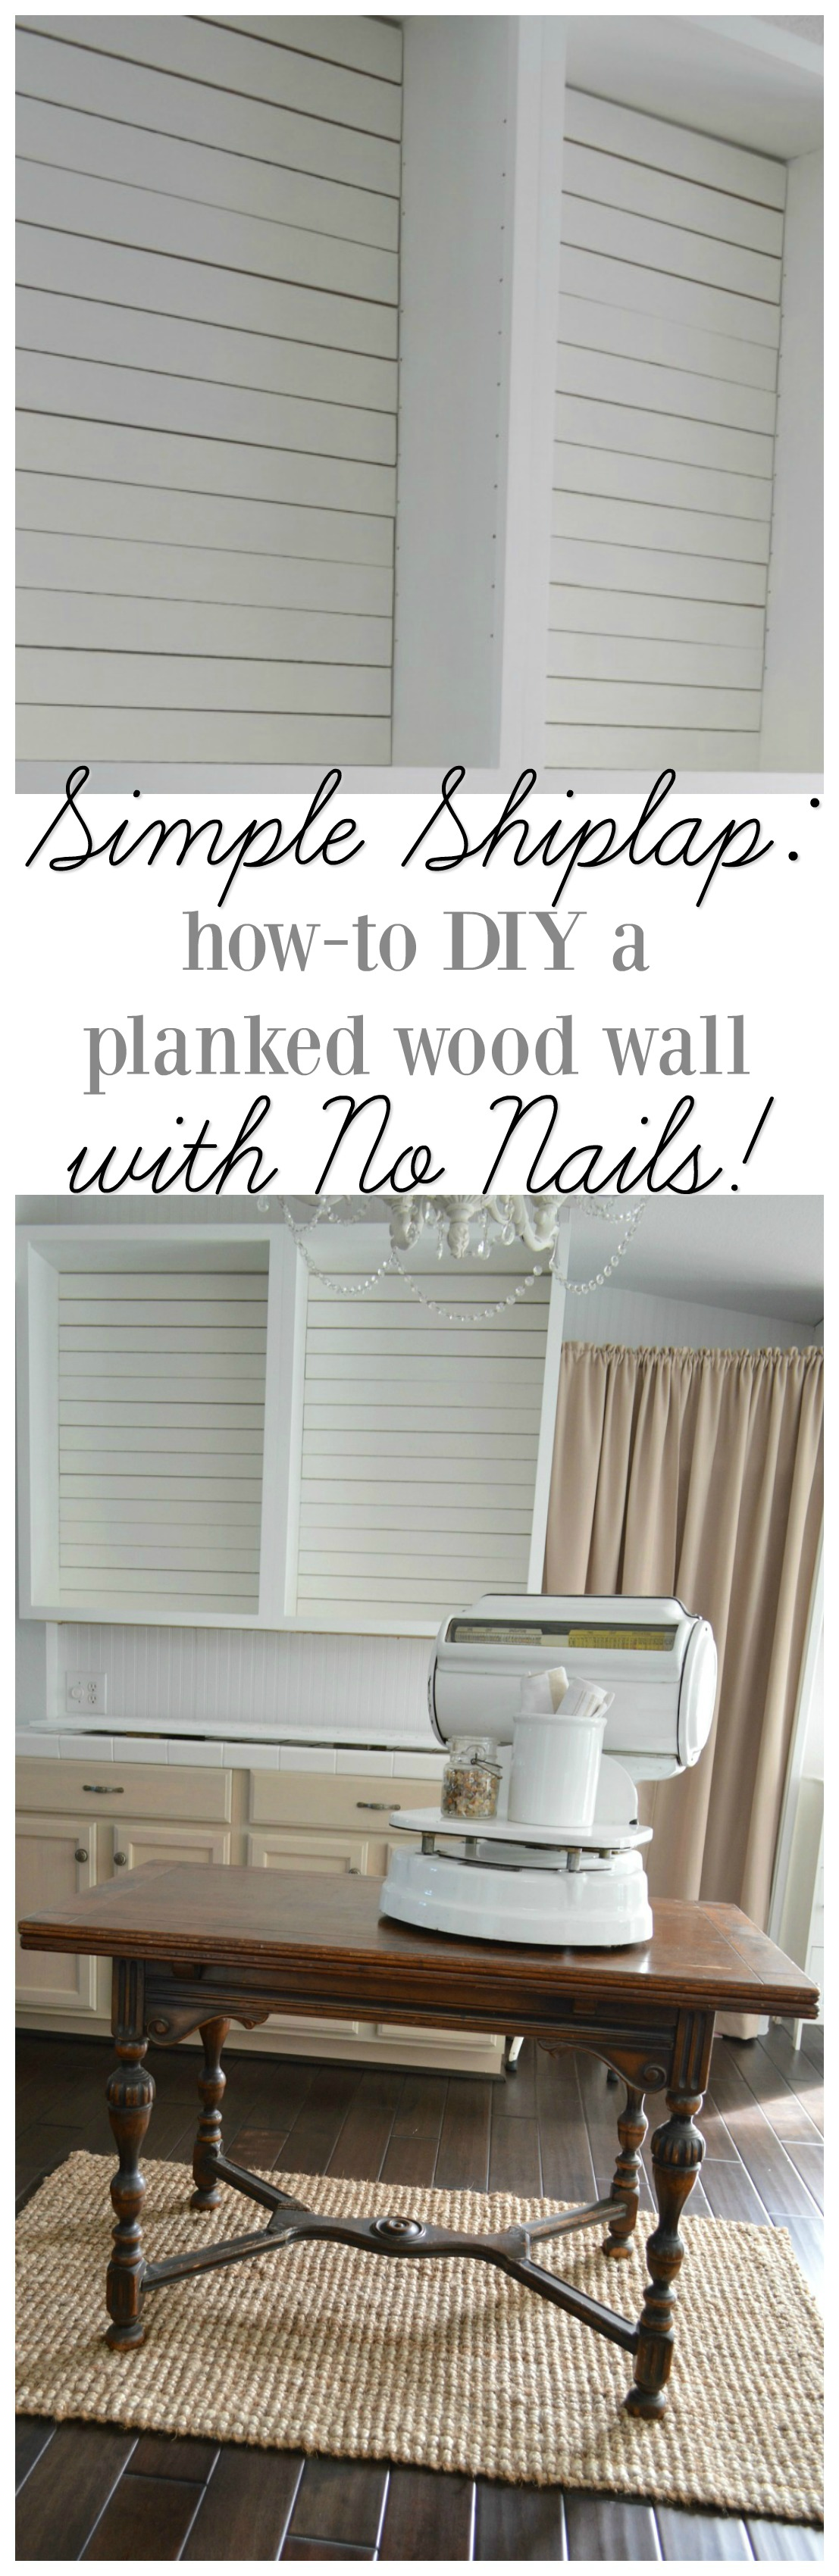 How to plank a wall simply without using nails. Shiplap open kitchen cabinet accent.